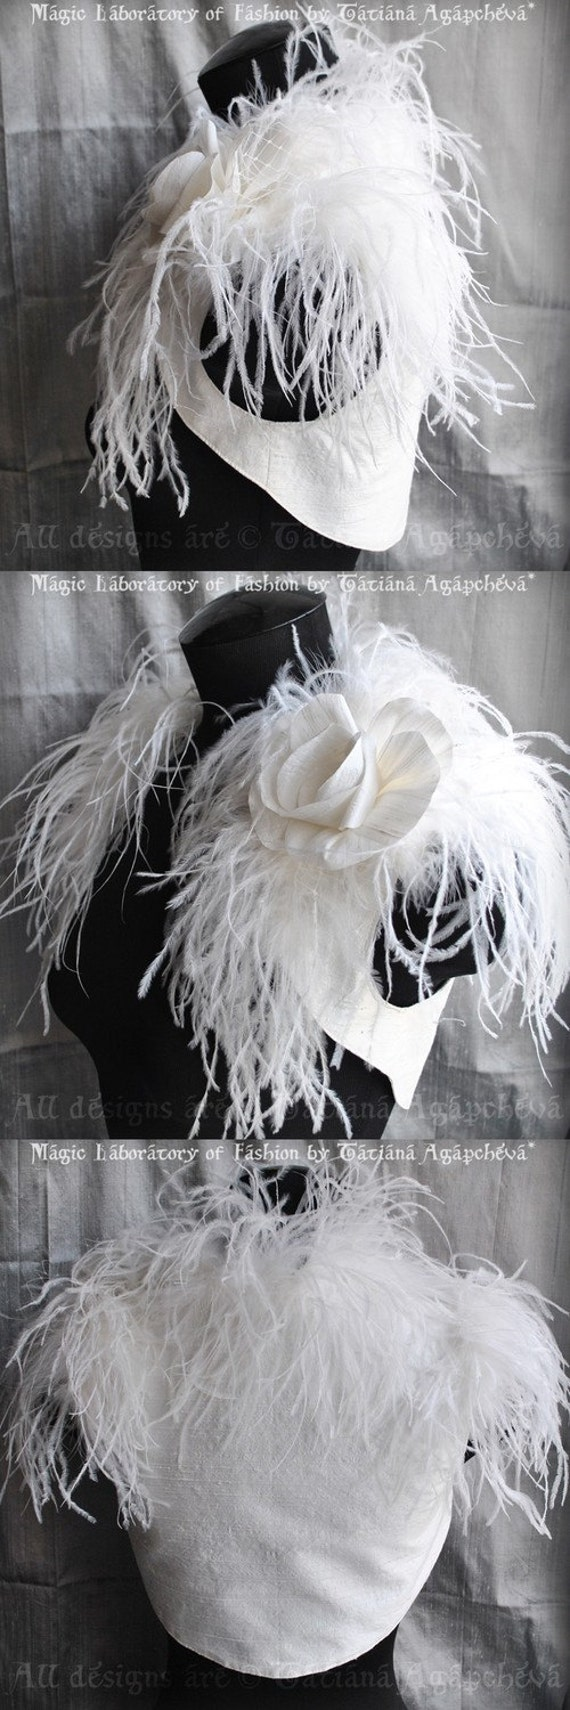 Wedding Shrug, Bolero Bridal Ostrich Dupioni Silk /BIRd Of PARADISe/ Handmade Silk Rose Brooch Satin Lined, Gatsby Style